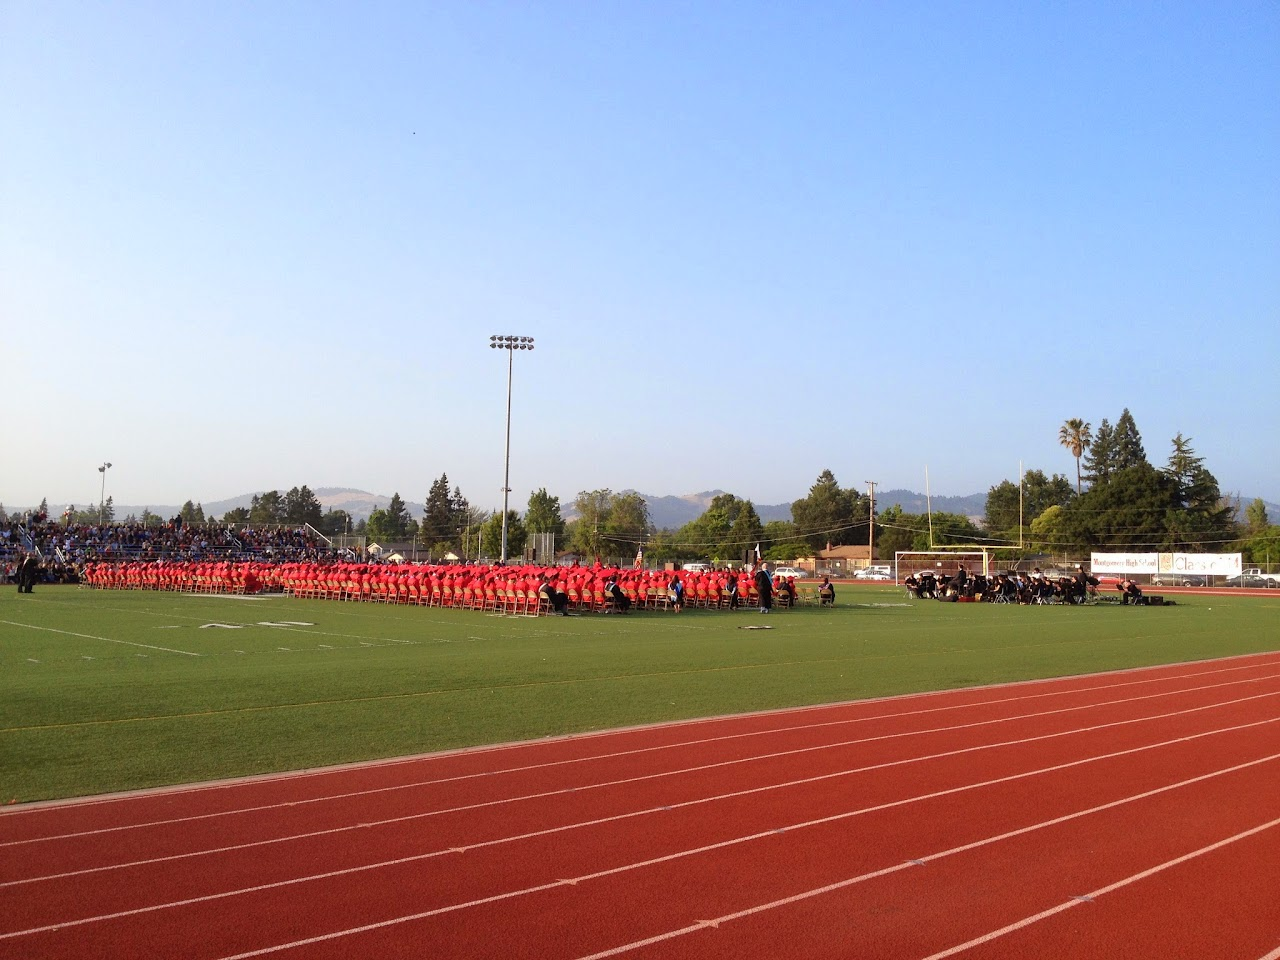 Courtneys Graduation Montgomery High May 2014 - Courtney_graduation_MHS_20140530_28.JPG